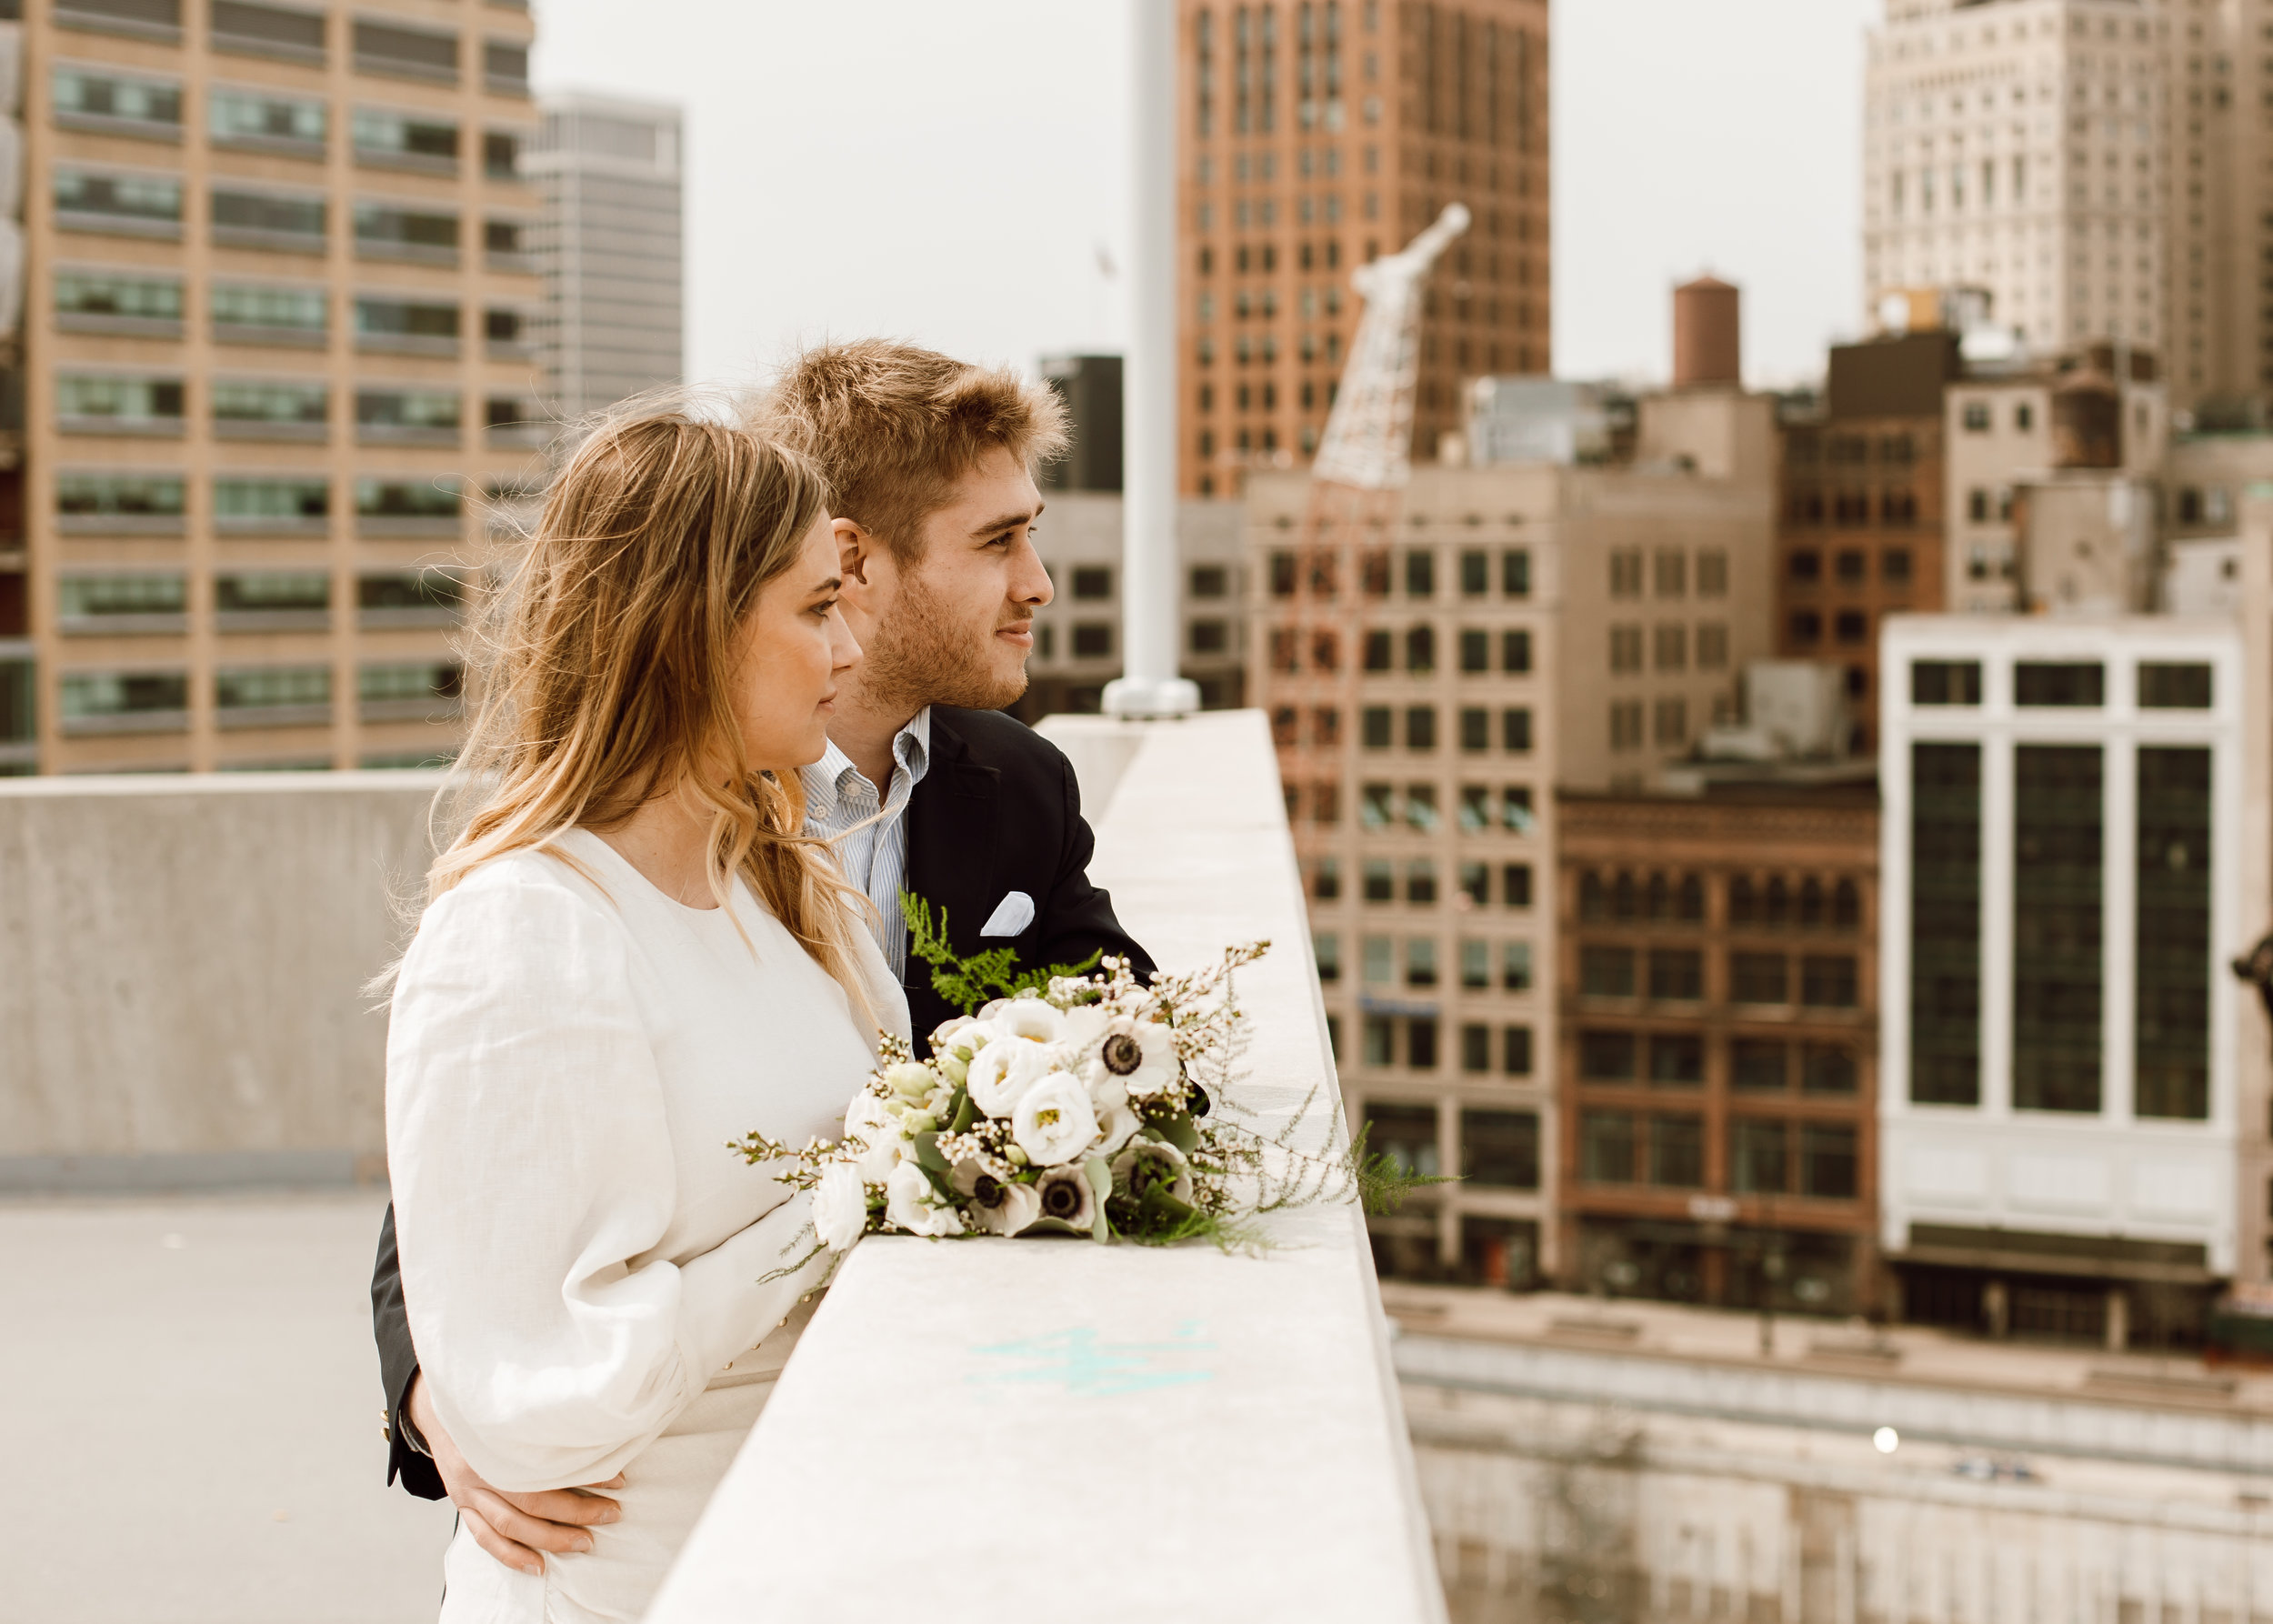 Katie_Vonasek_Detroit_Courthouse_Wedding_Photography33.jpg